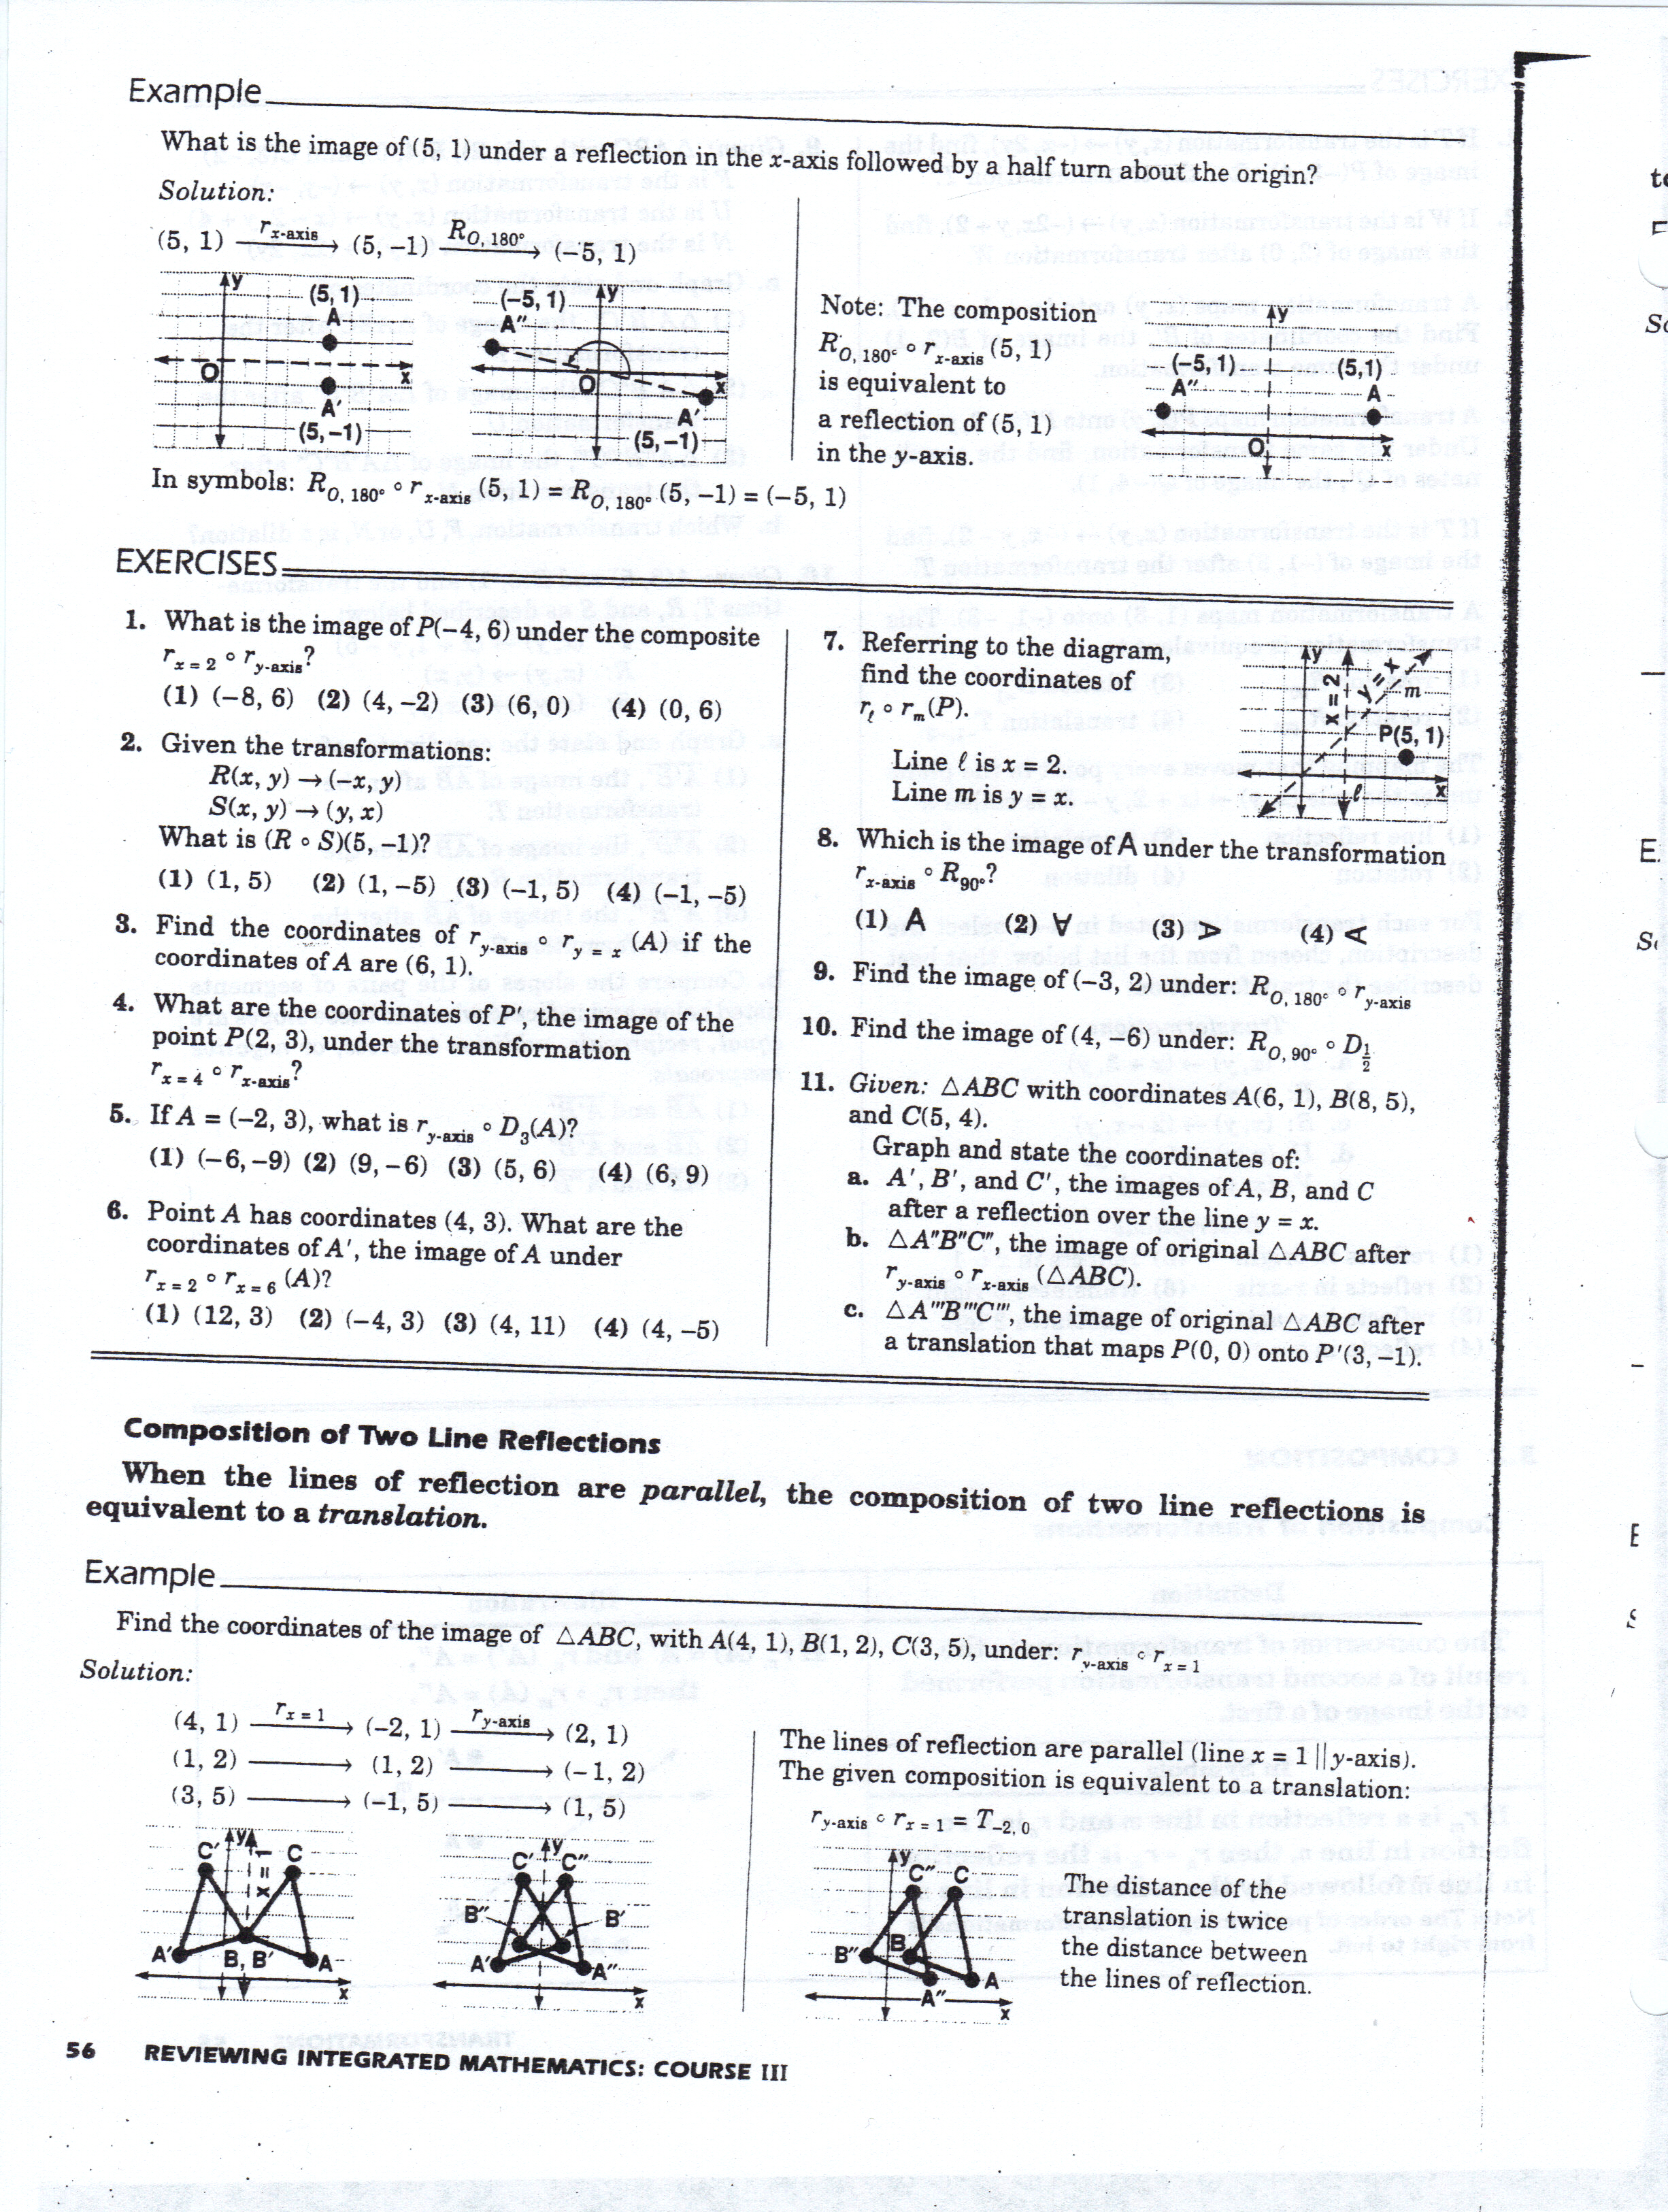 worksheet Properties Of Parallelograms Worksheet geometry worksheets mhshs wiki symmetry worksheet composite transformations p55 p56 properties of parallelograms